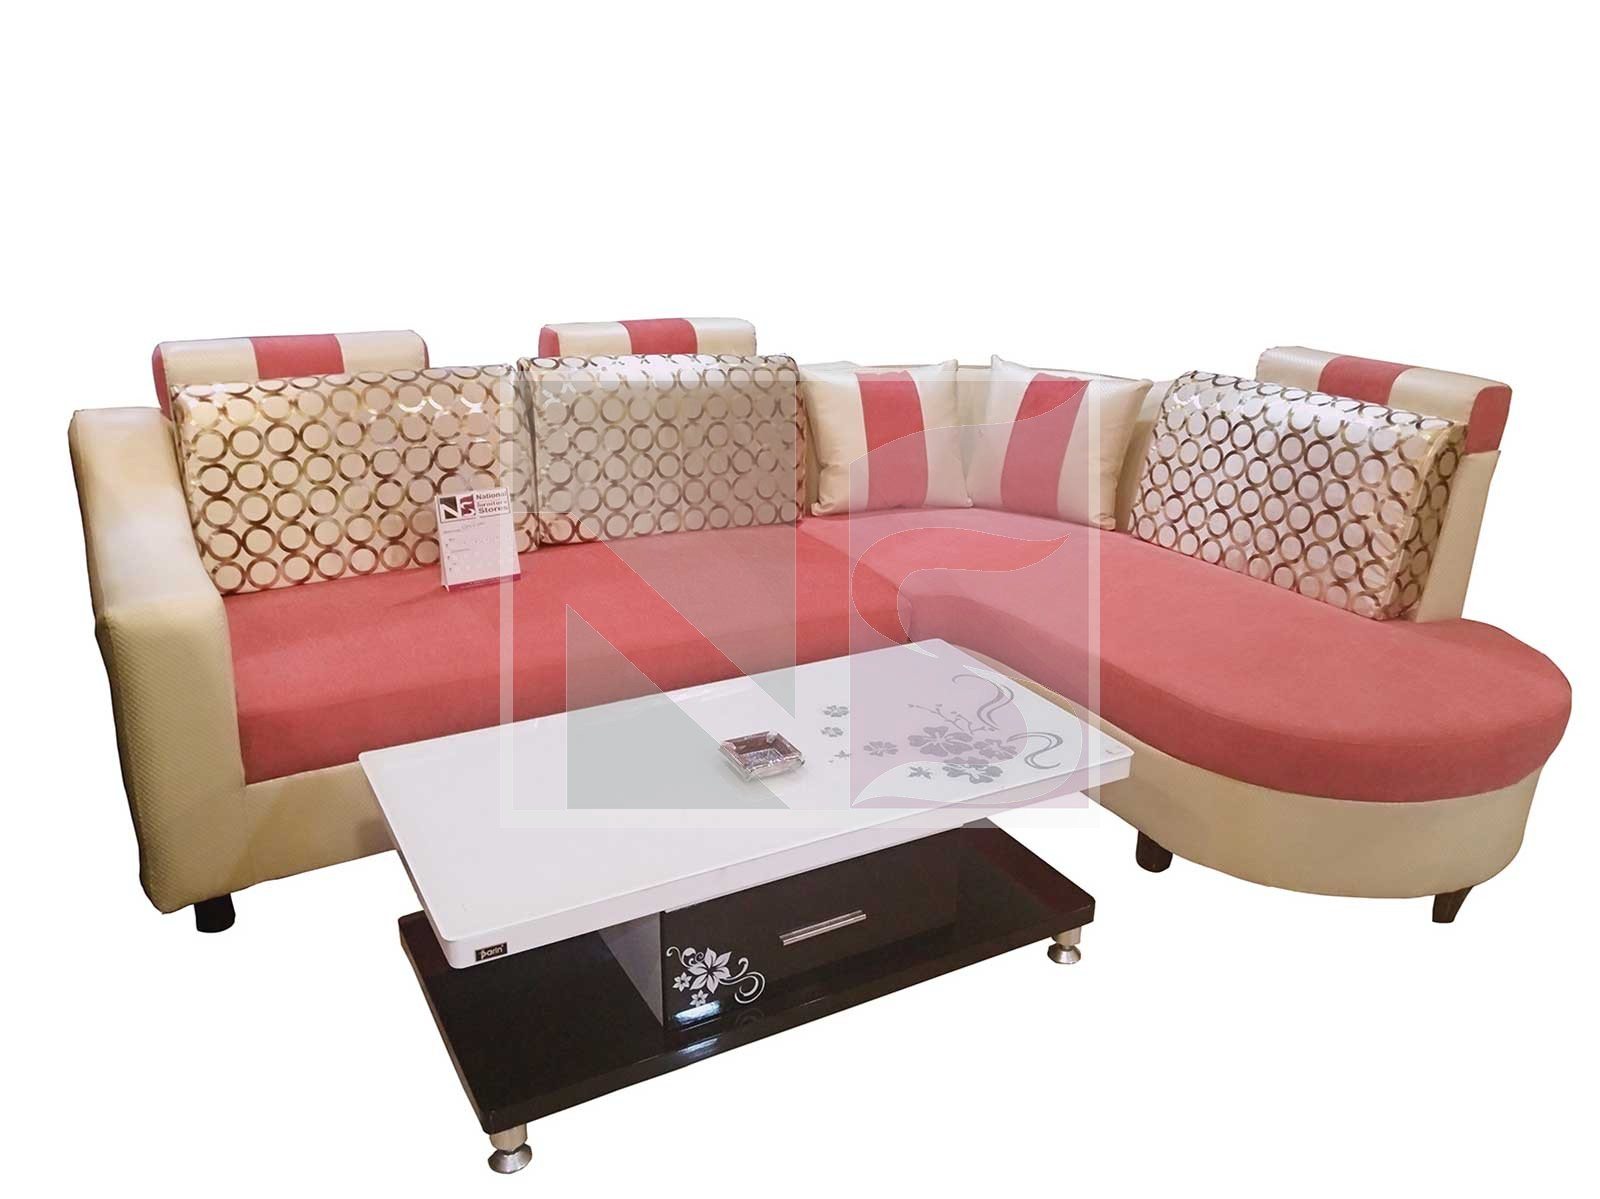 corner sofa set online india ed slipcovers for sectional sofas lovely with center table